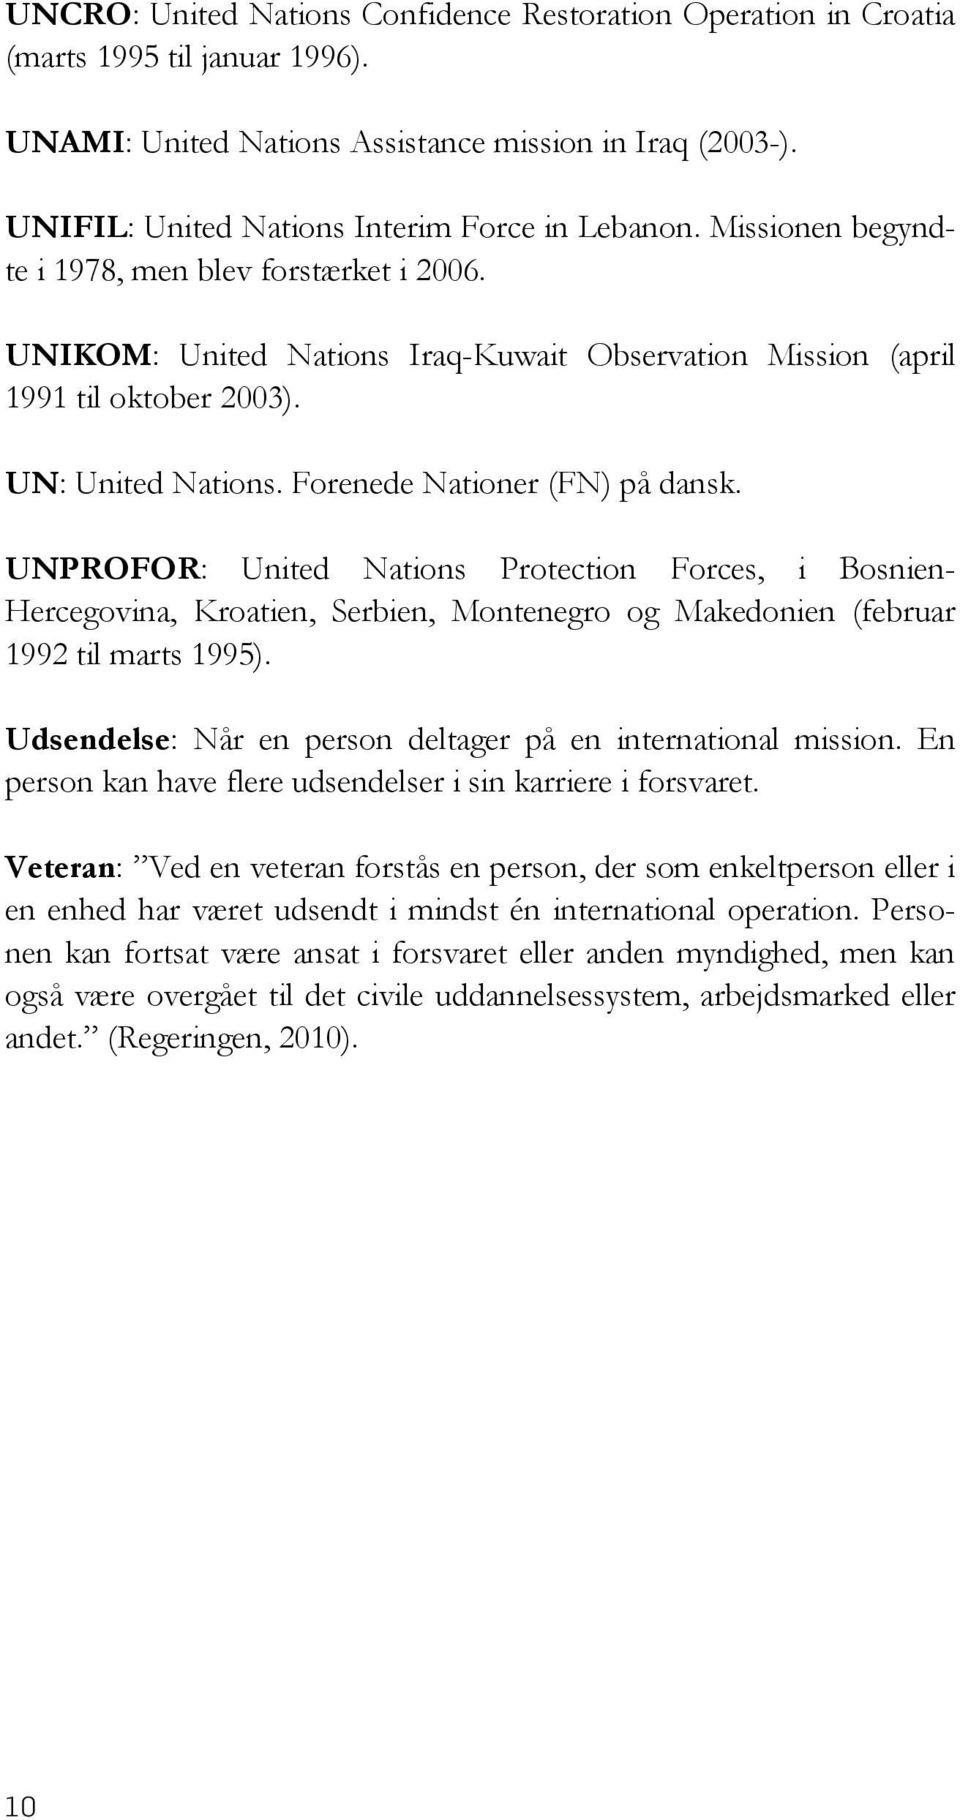 UN: United Nations. Forenede Nationer (FN) på dansk. UNPROFOR: United Nations Protection Forces, i Bosnien- Hercegovina, Kroatien, Serbien, Montenegro og Makedonien (februar 1992 til marts 1995).